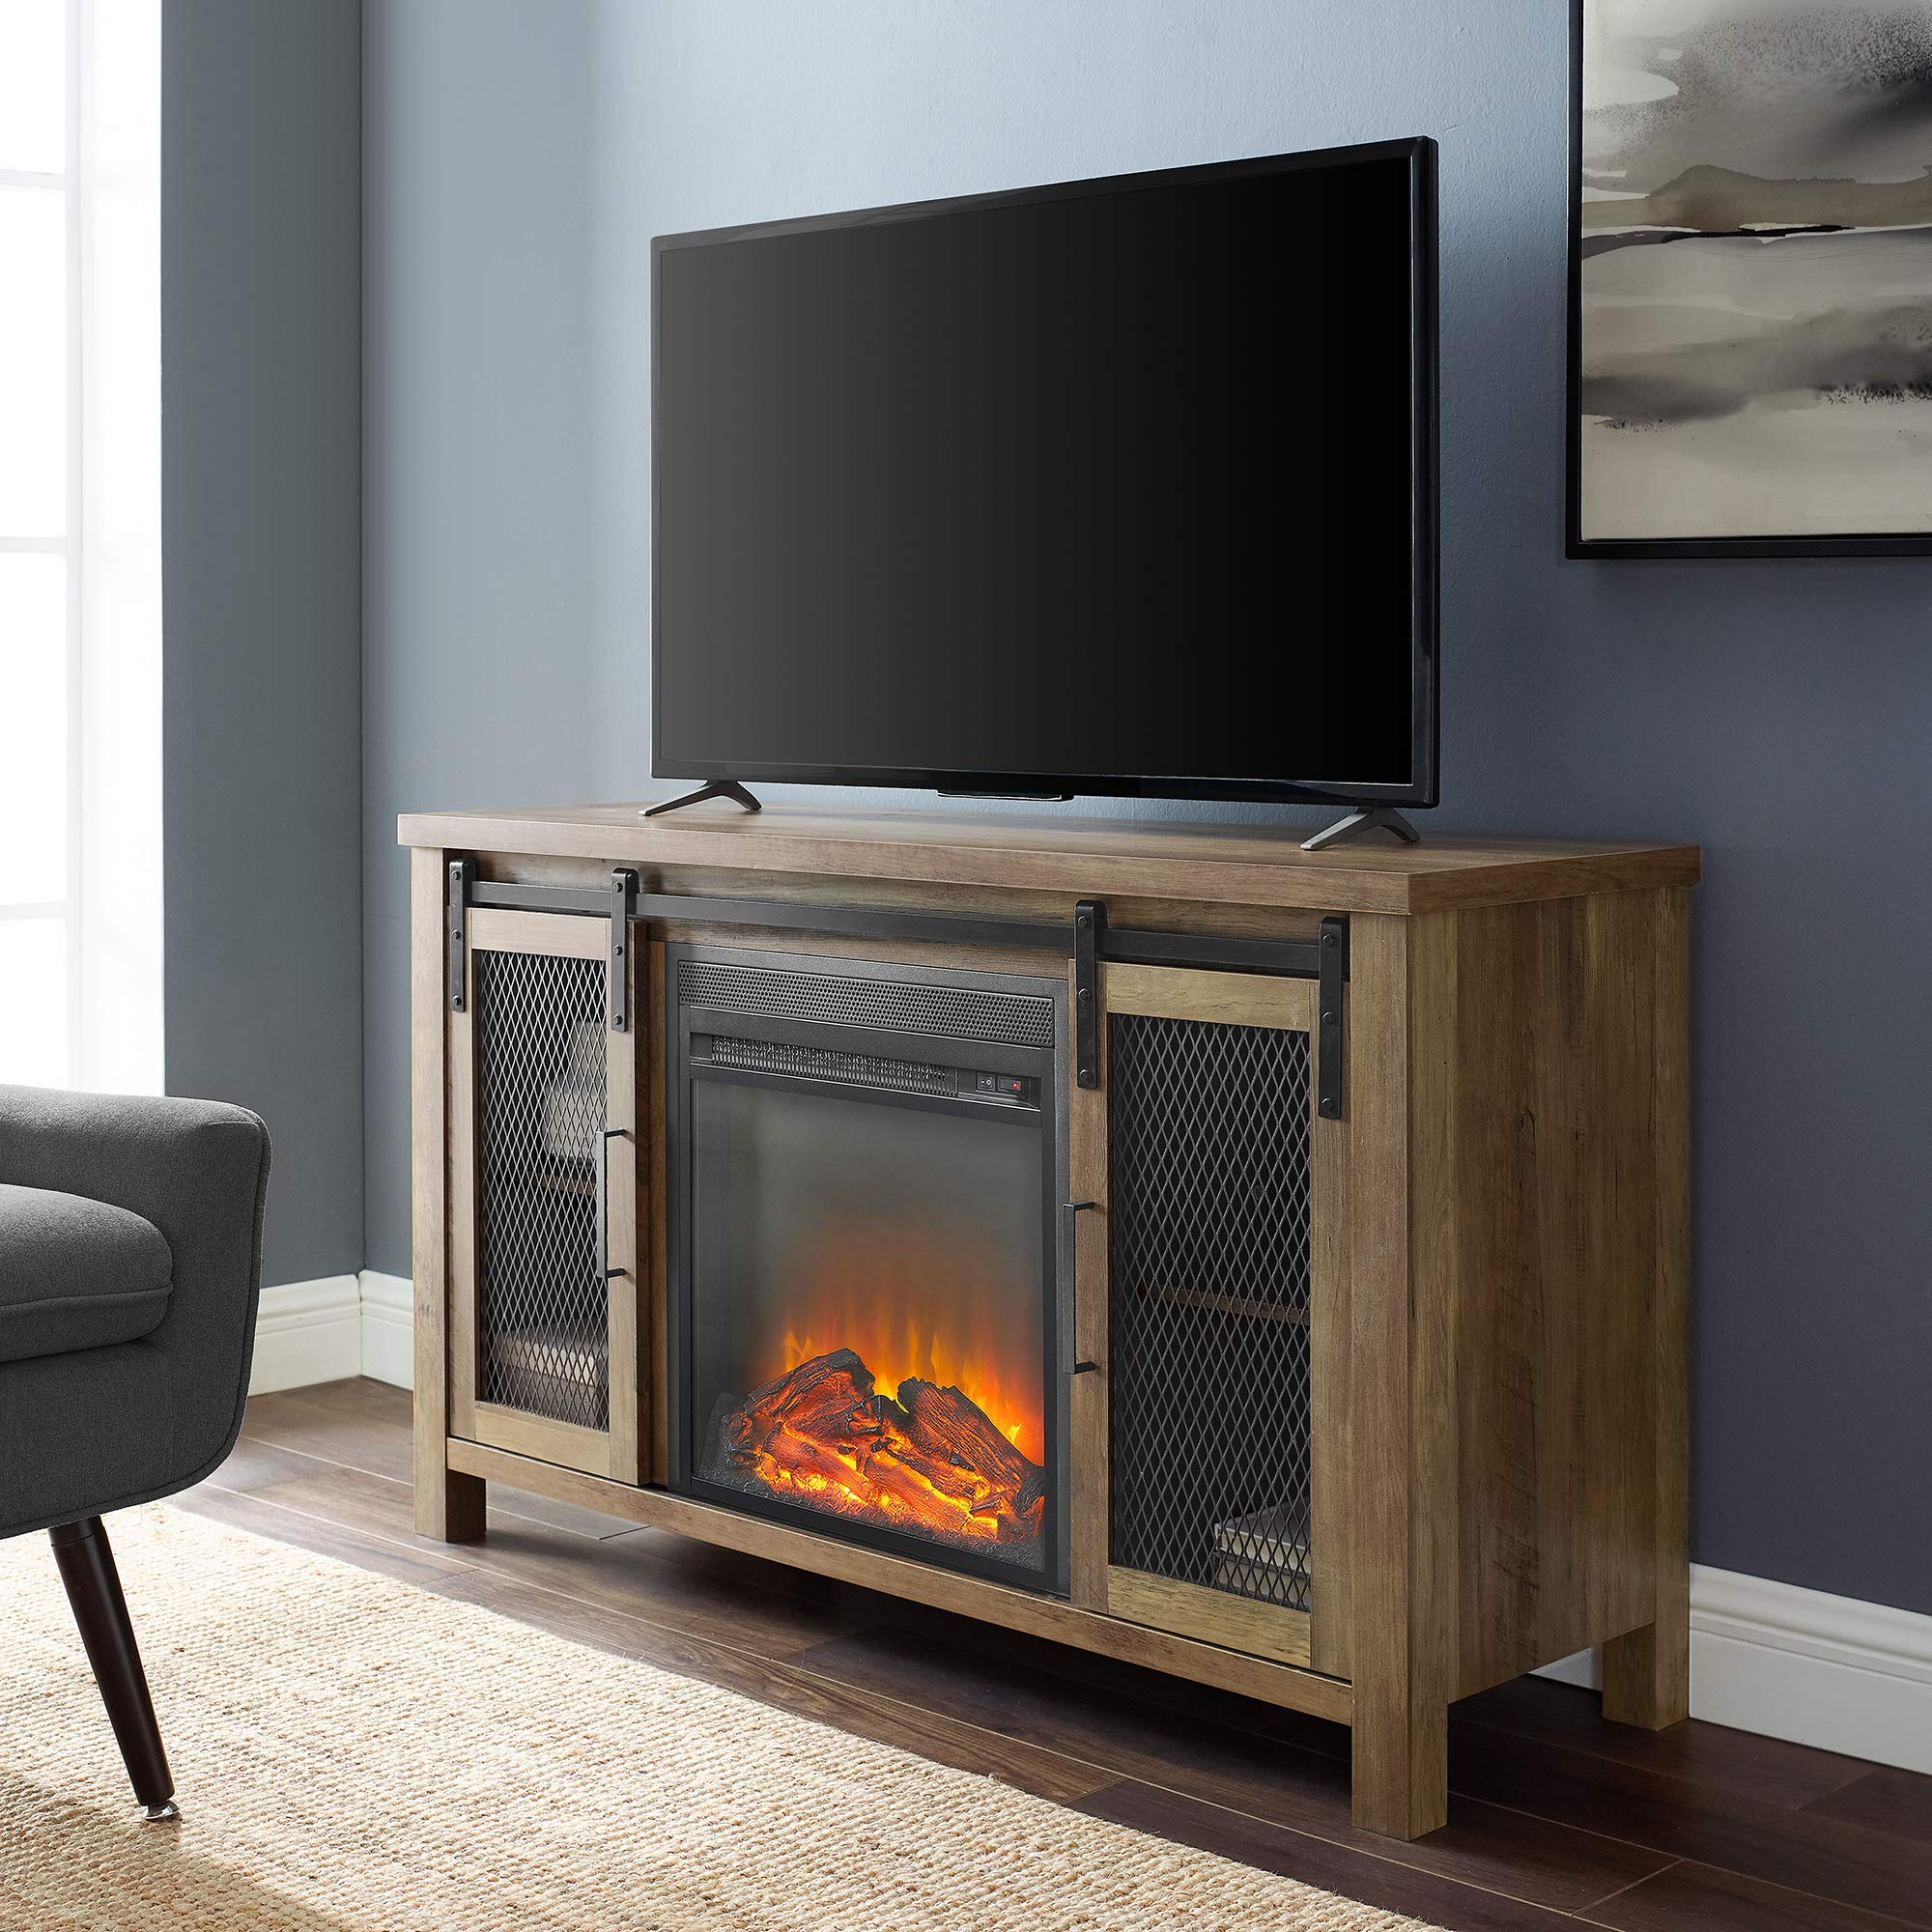 "Walker Edison Furniture Company 48"" Rustic Farmhouse Fireplace TV Stand - Rustic Oak"